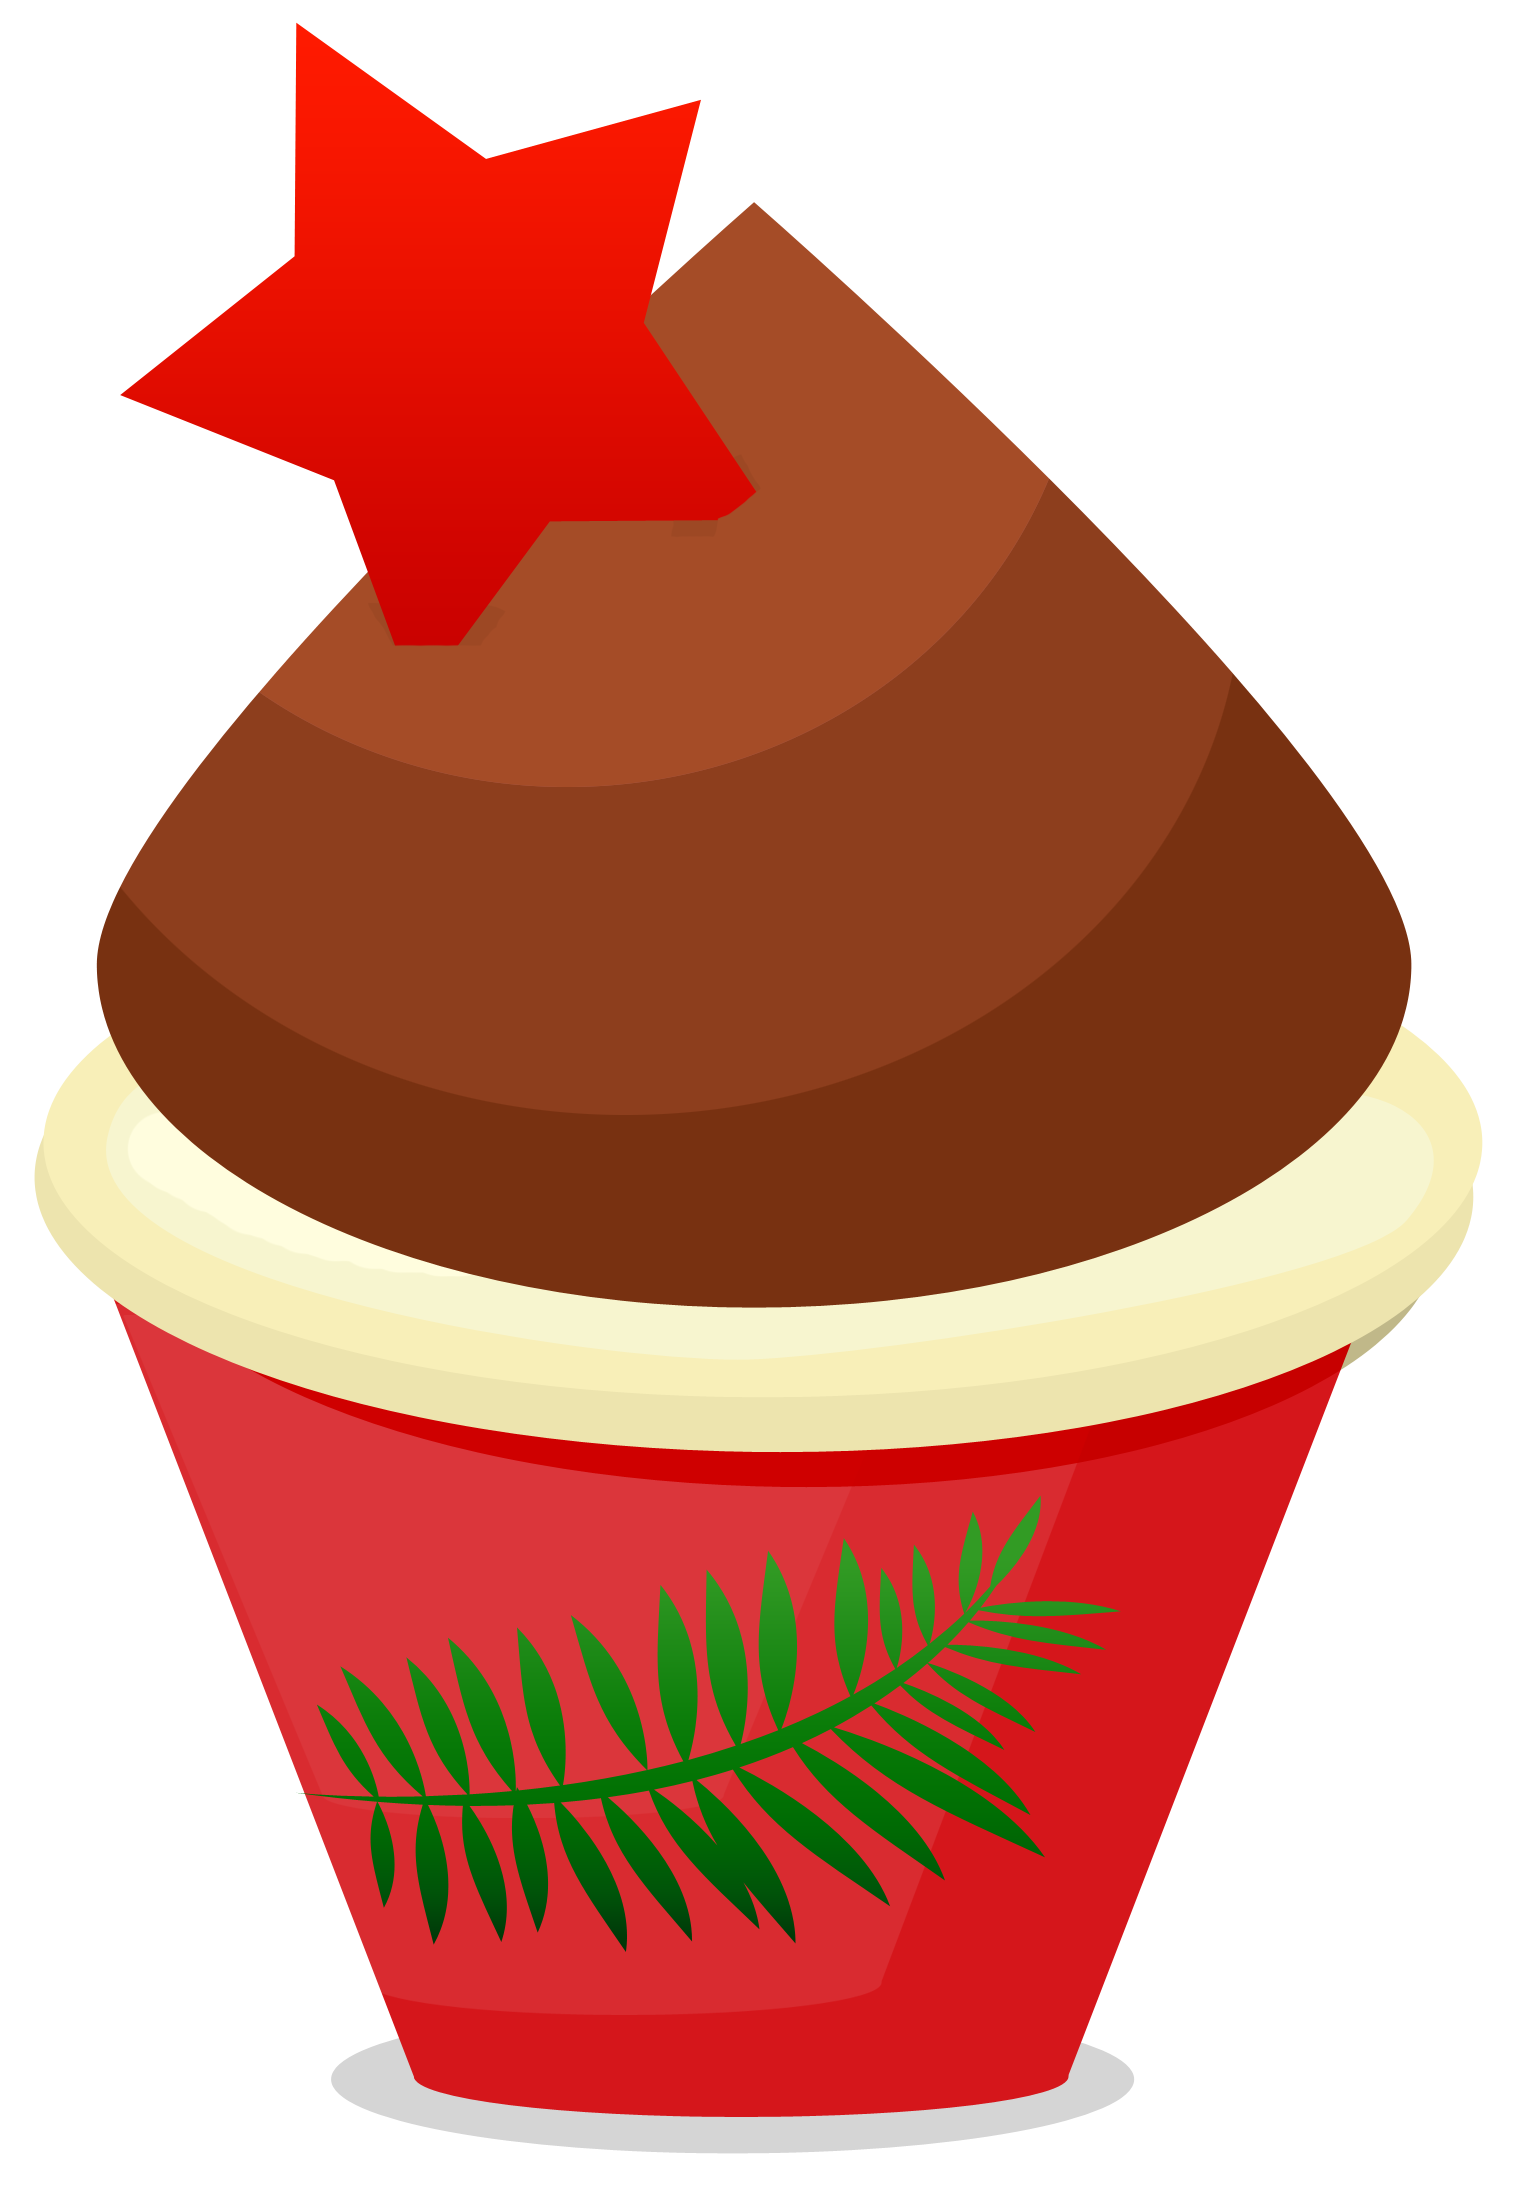 Red Cake Clipart : Cupcake Clipart Red - ClipArt Best